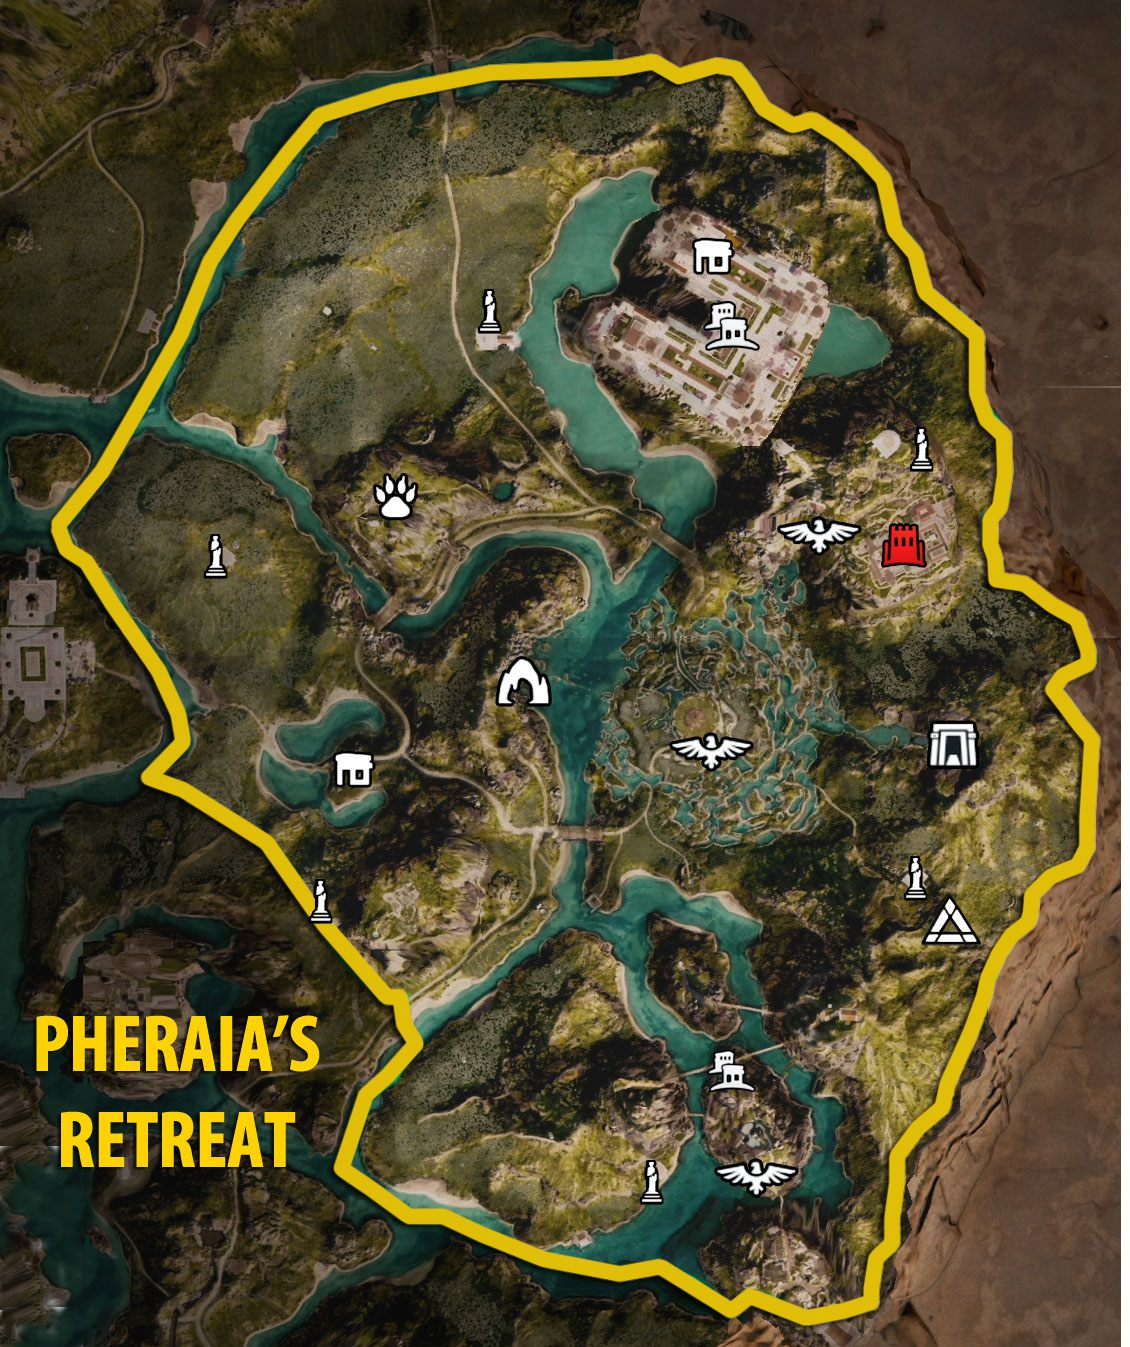 Pheraia's Retreat - Fate of Atlantis DLC Map - Assassin's Creed Odyssey